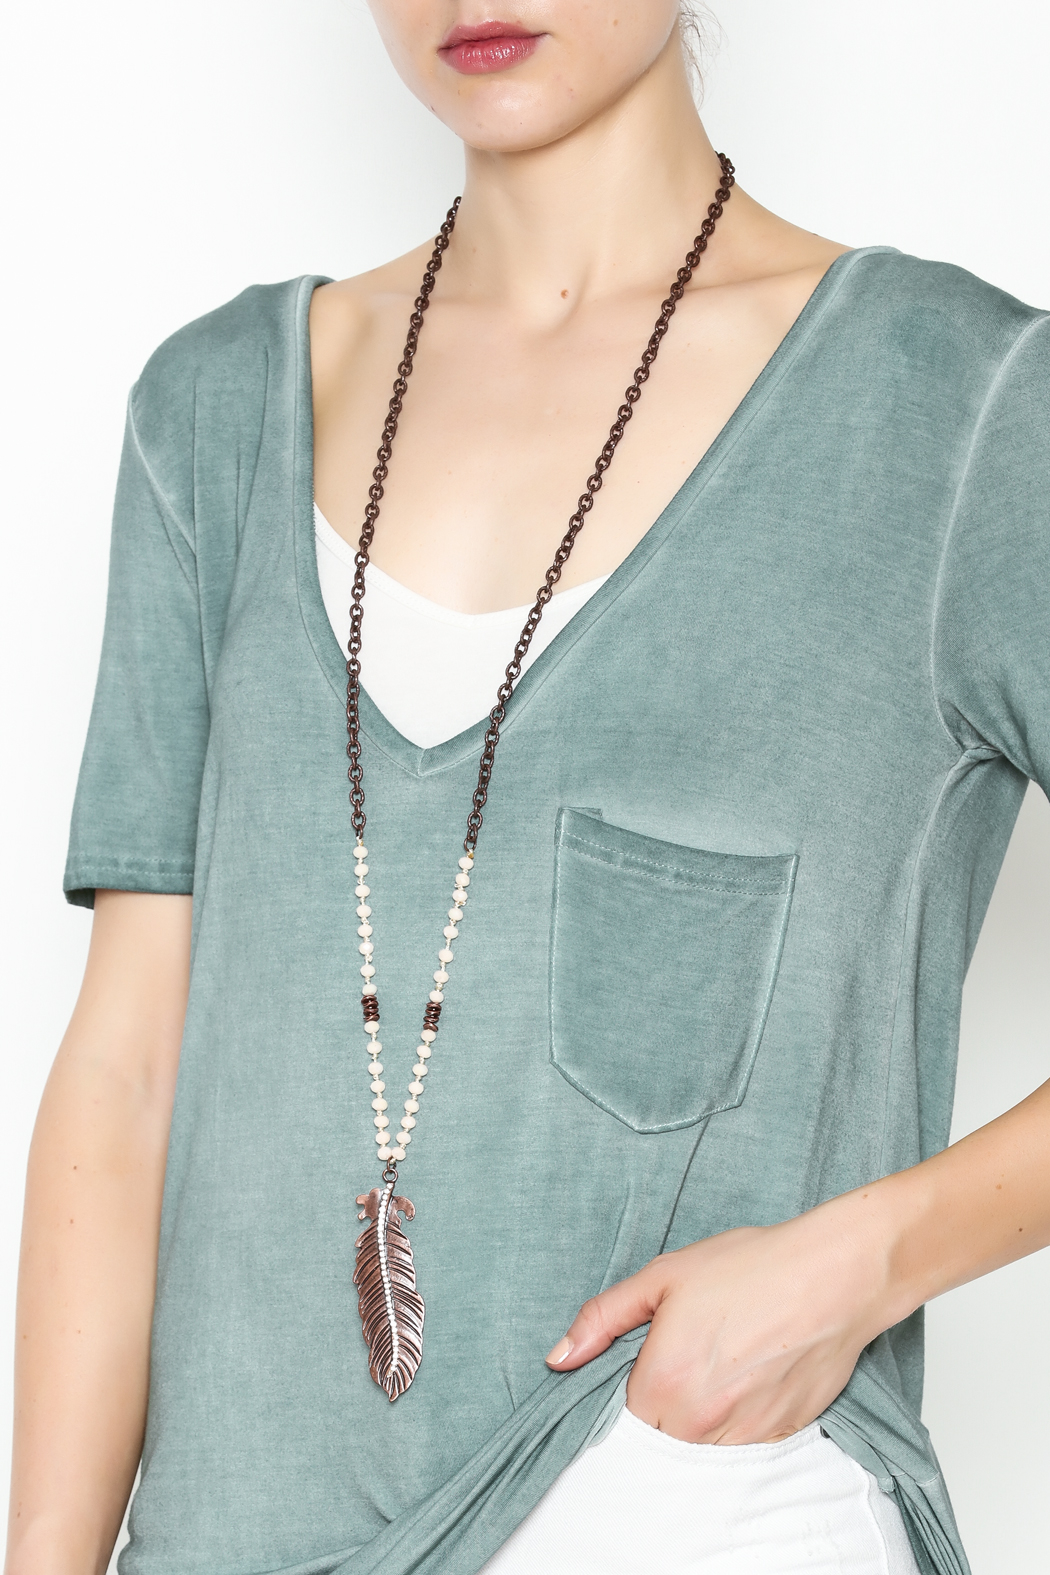 Southern Living Copper Feather Necklace - Main Image